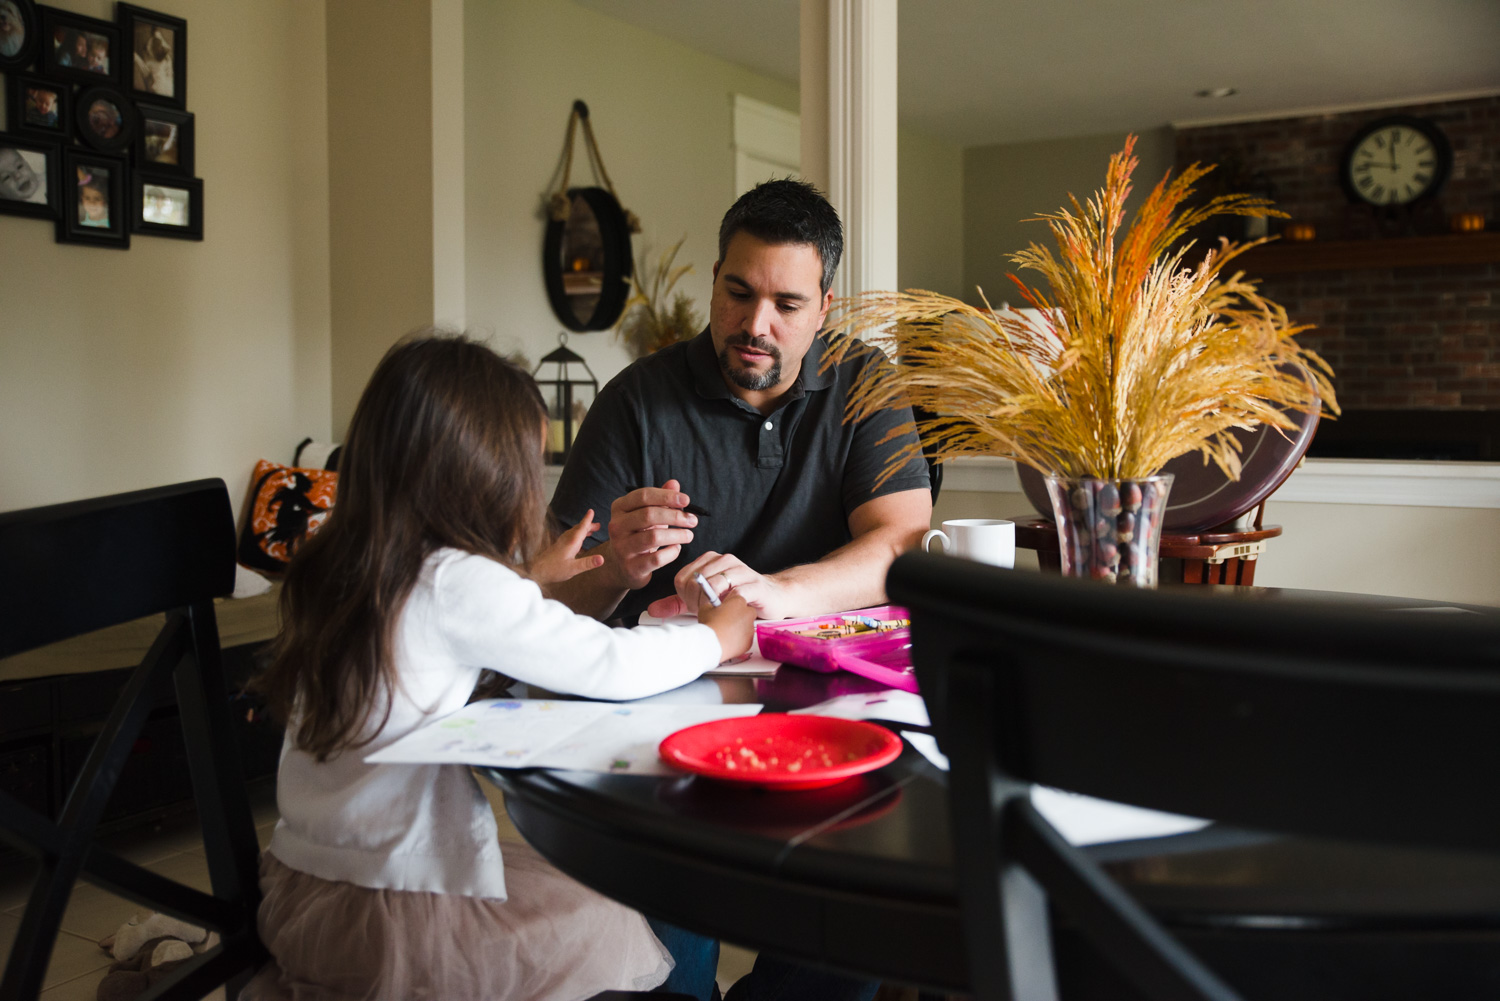 Father drawing with daughter at kitchen table.